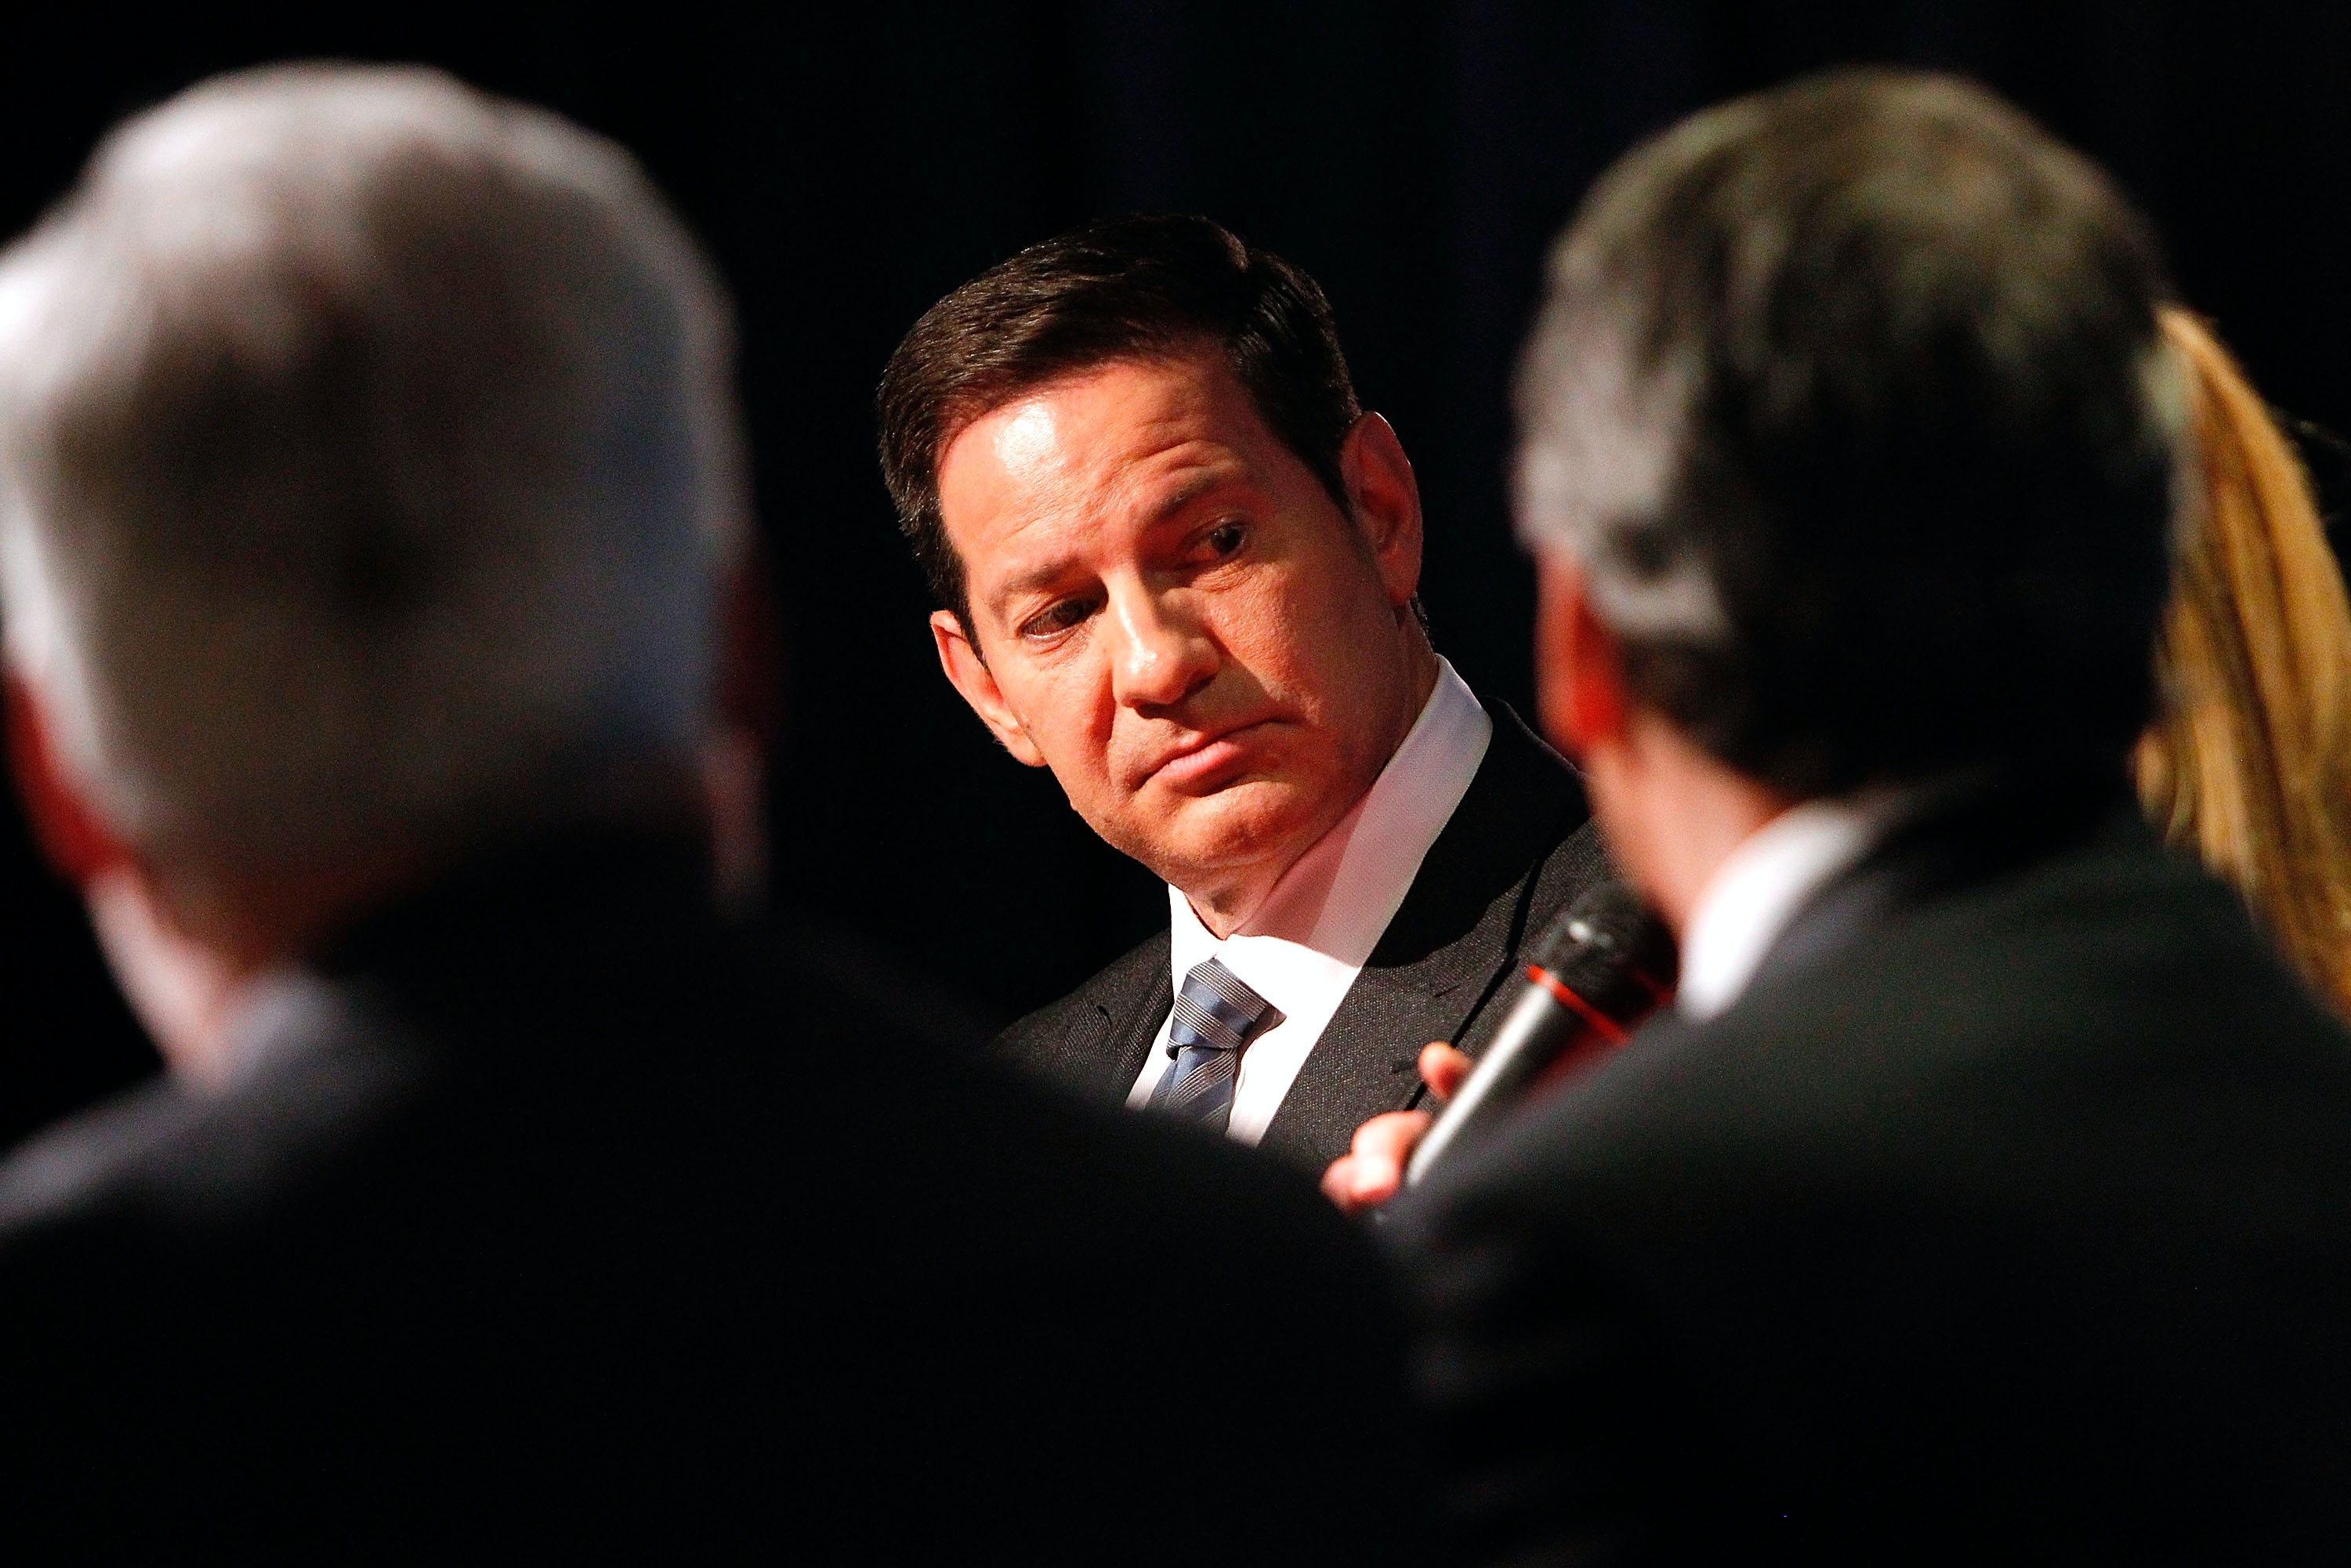 Mark Halperin Has Been Accused By Five Women of Sexual Harassment